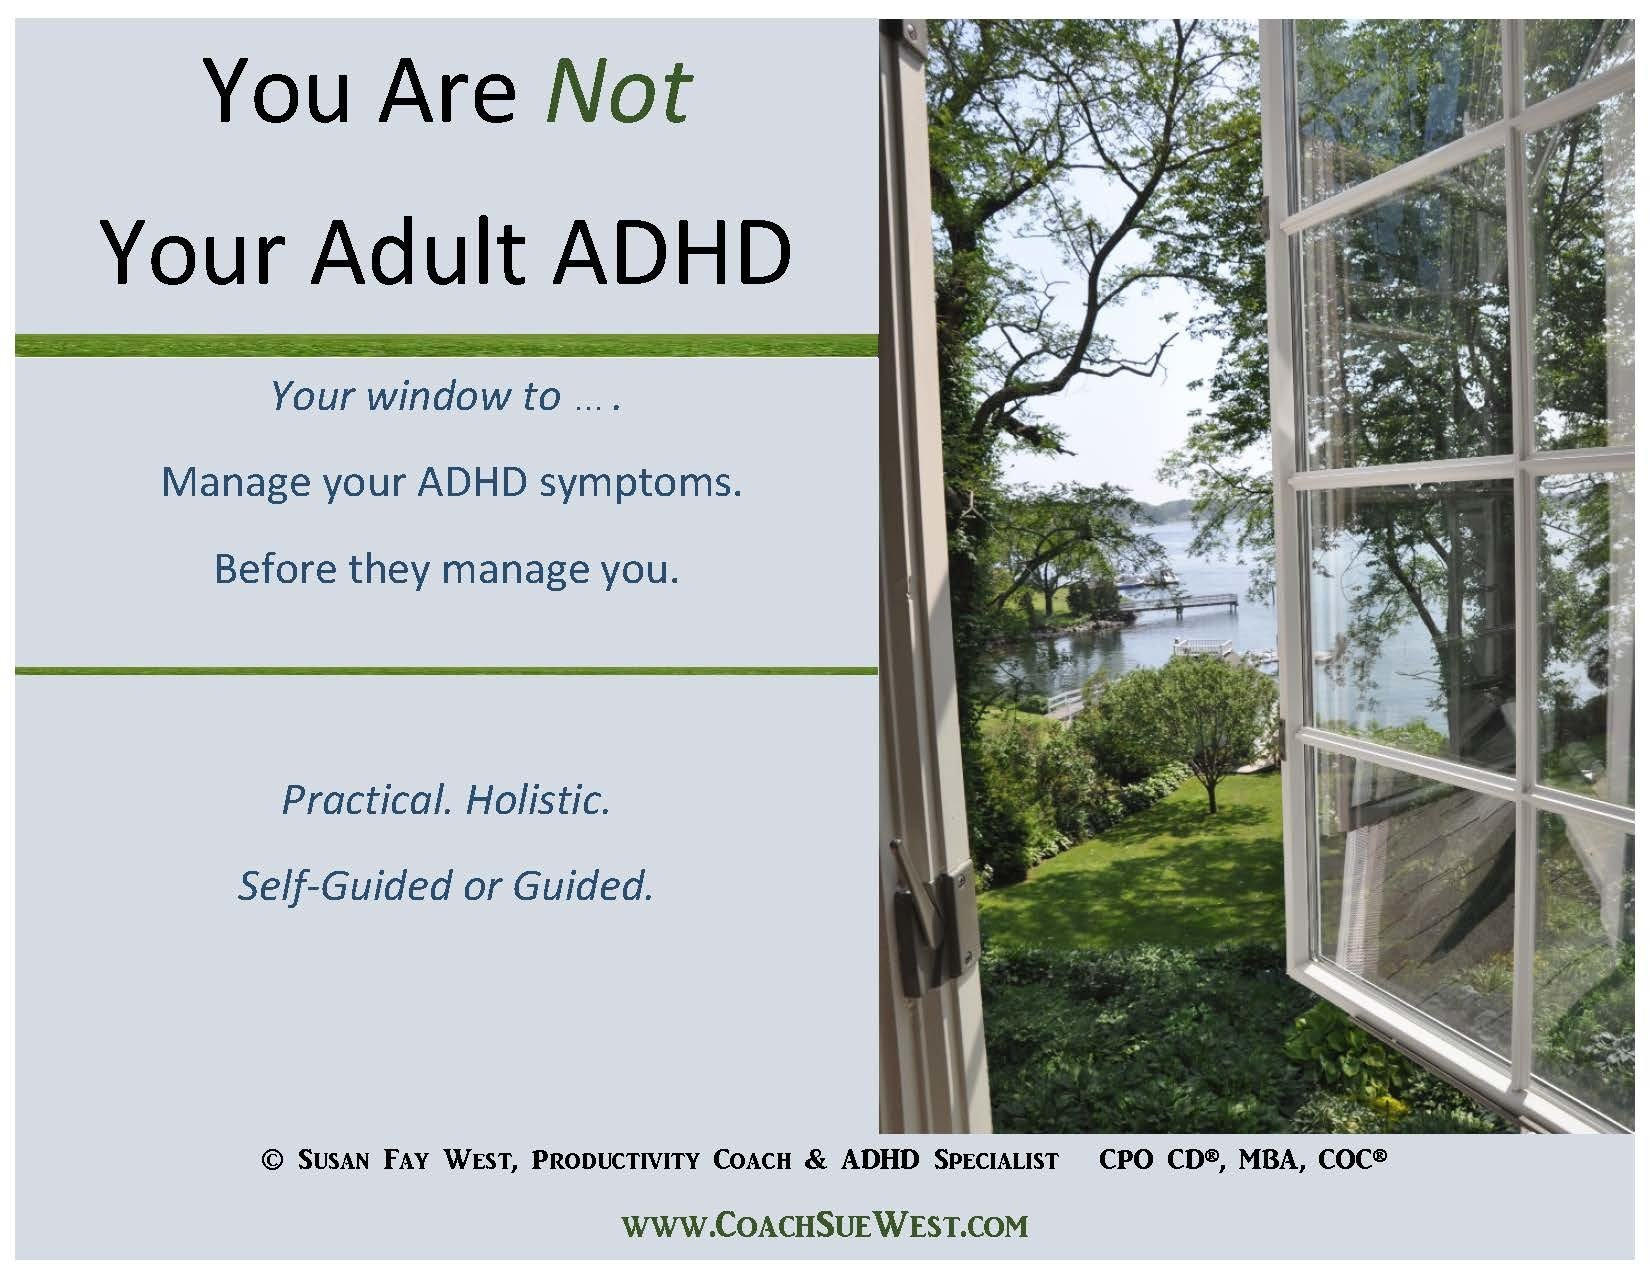 Workbook Only: You Are Not Your ADHD 05012017